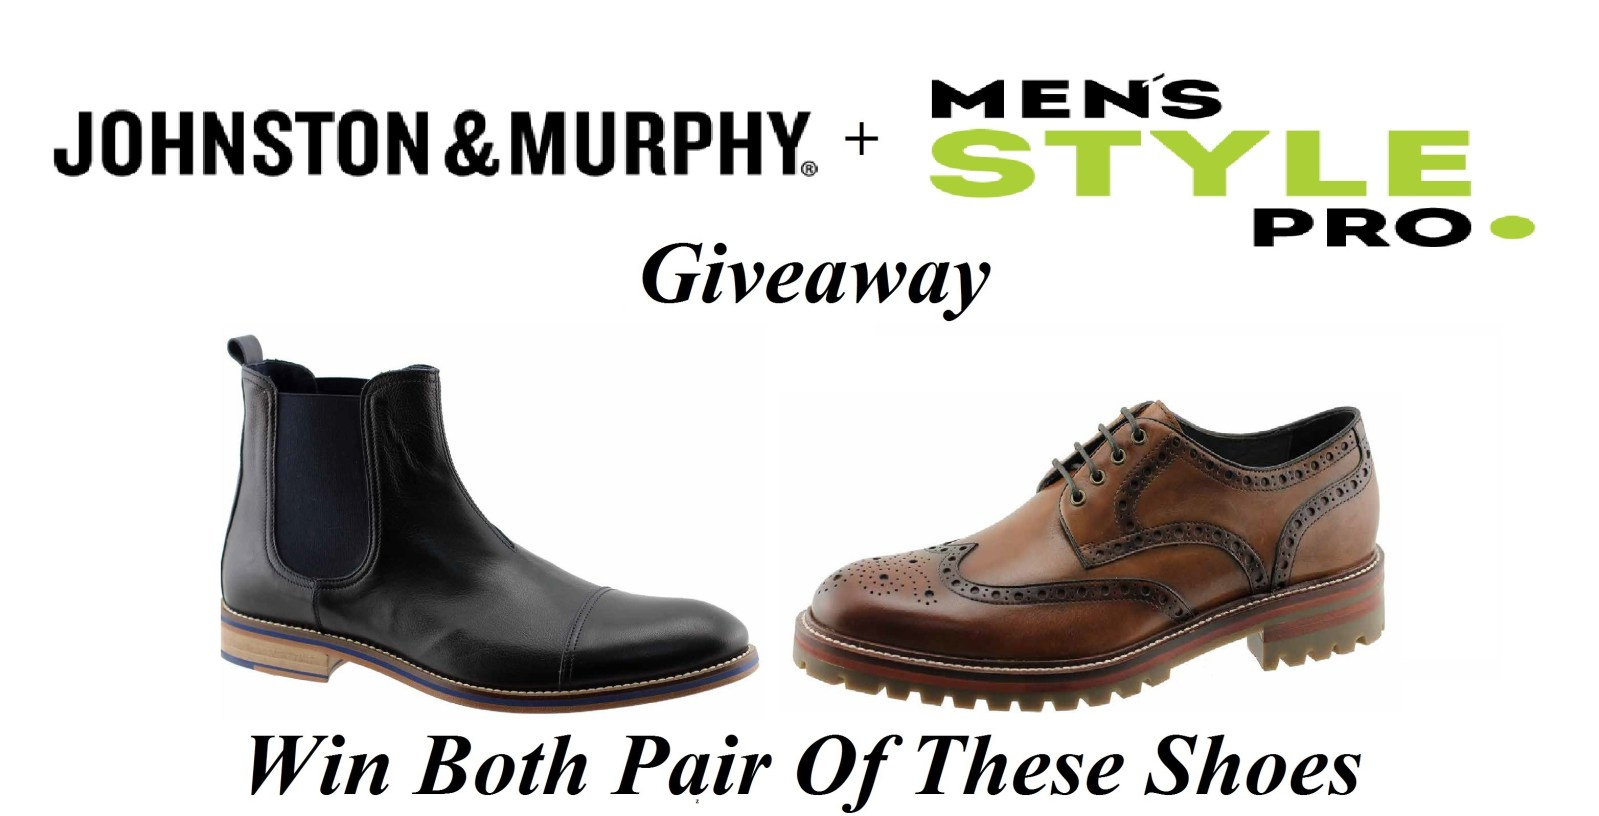 Johnston & Murphy Holiday Giveaway via Men's Style Pro